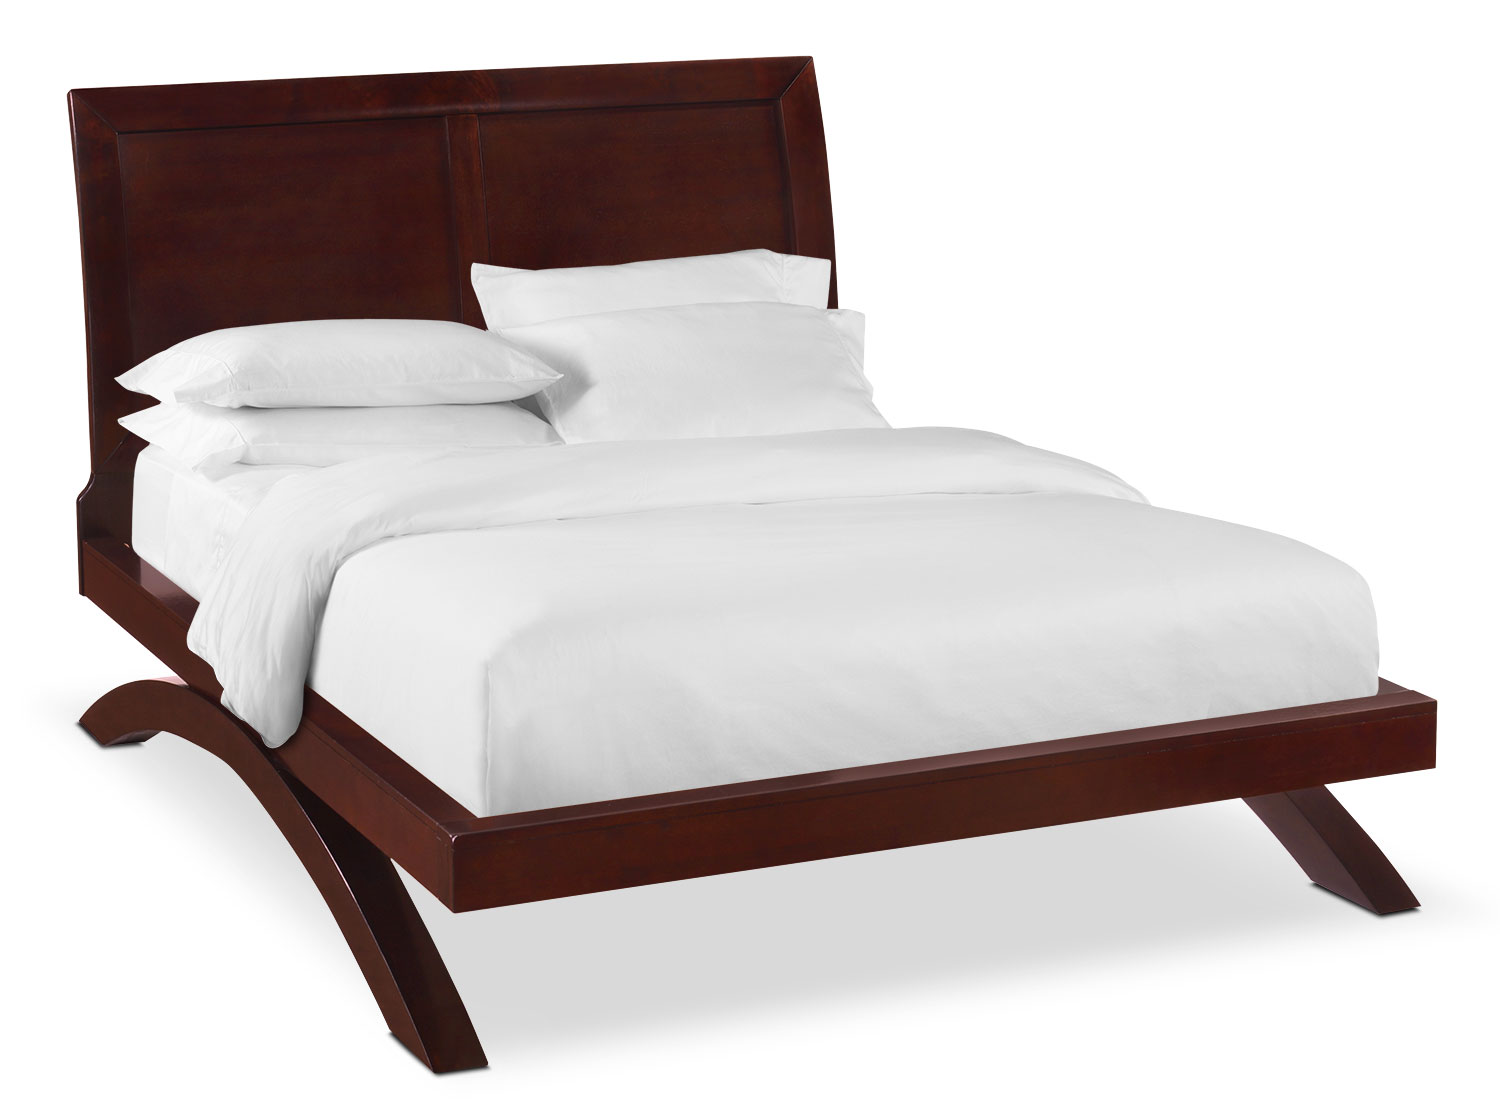 Bedroom Furniture - Jaden King Arch Bed - Merlot